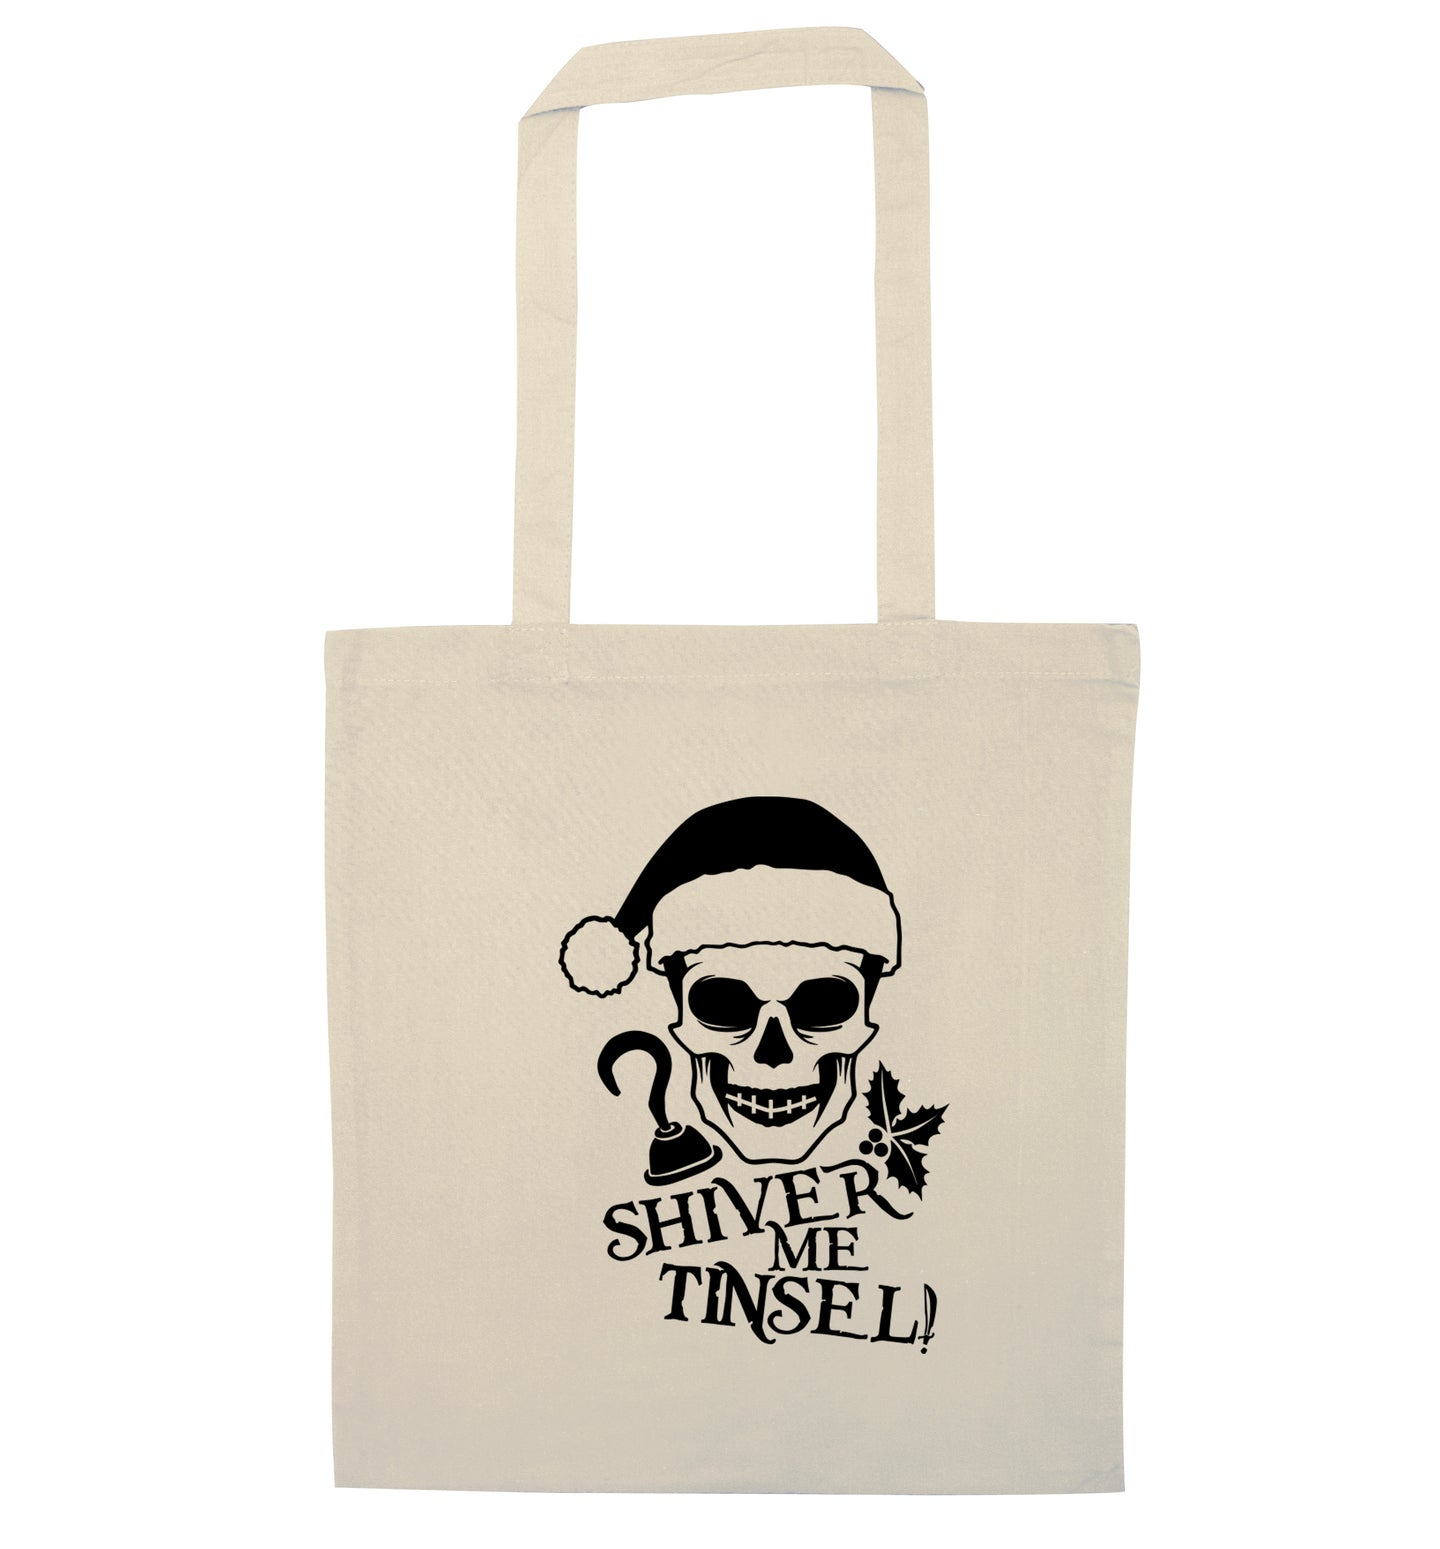 Shiver me tinsel natural tote bag